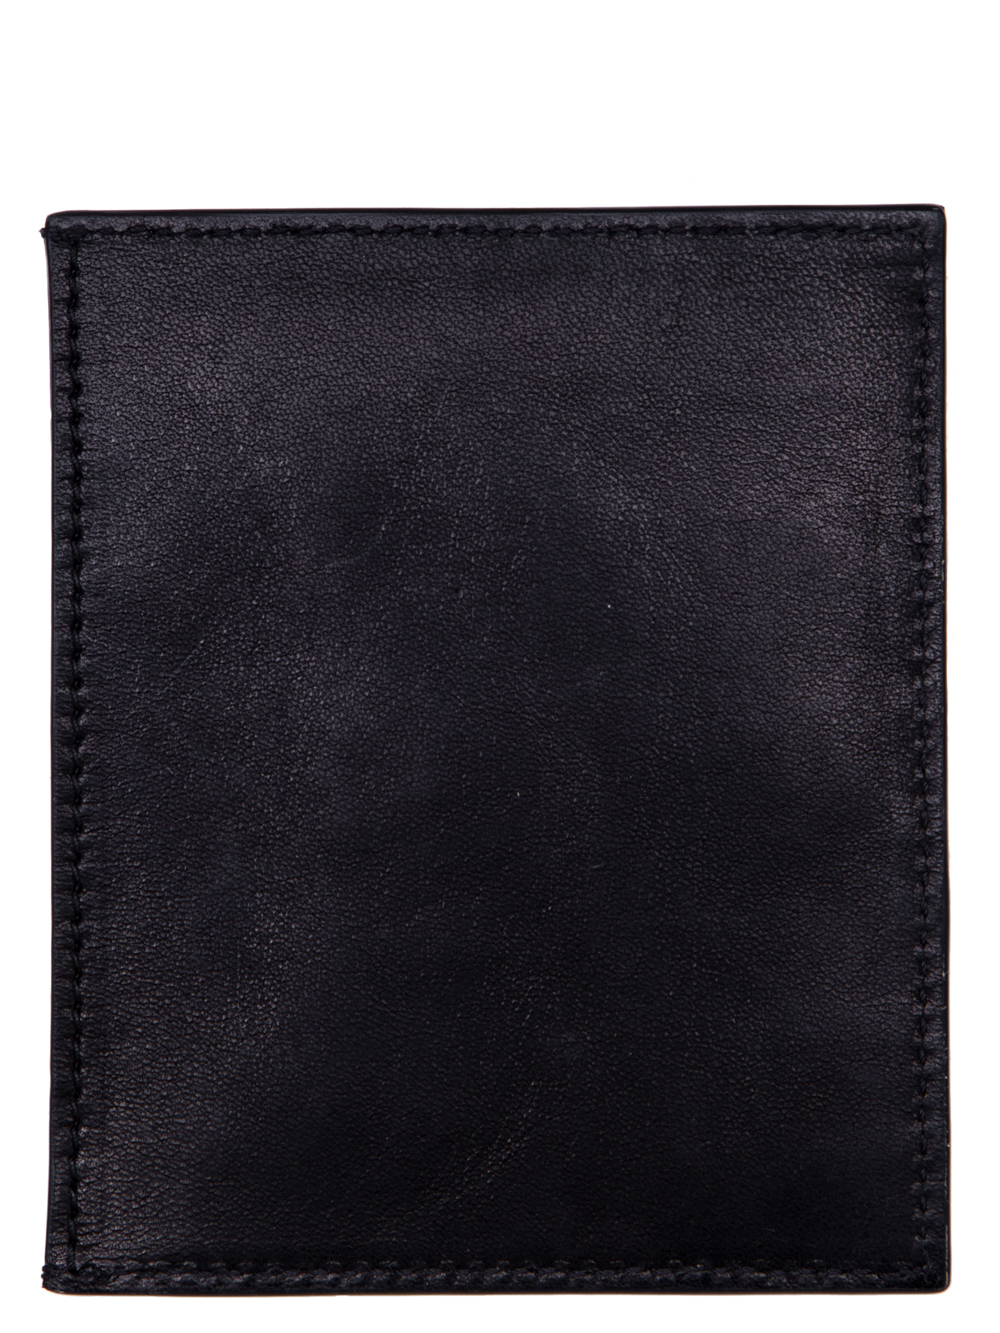 RICK OWENS SS19 BABEL CREDIT CARD HOLDER IN BLACK LEATHER